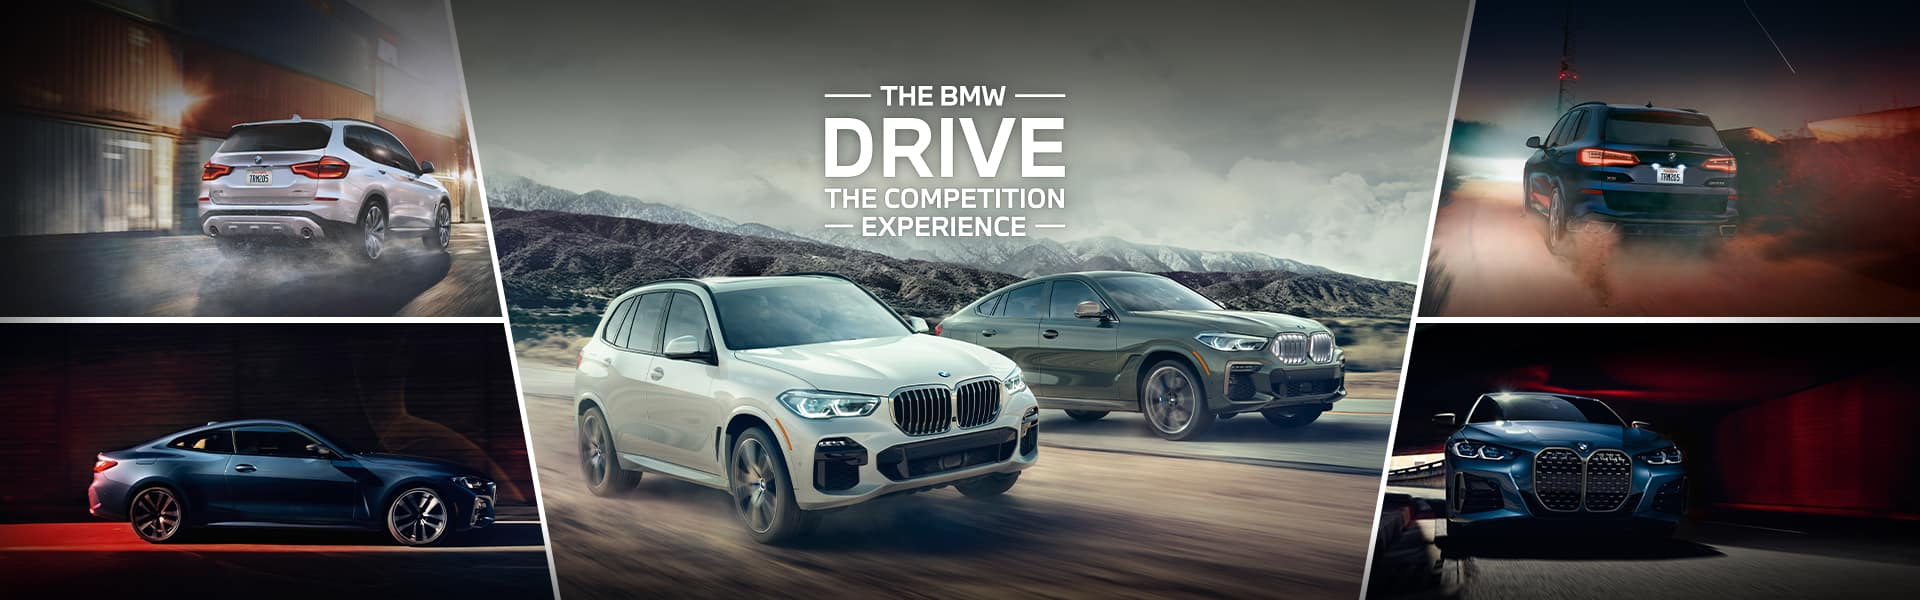 Test Drive A BMW Against the Competition